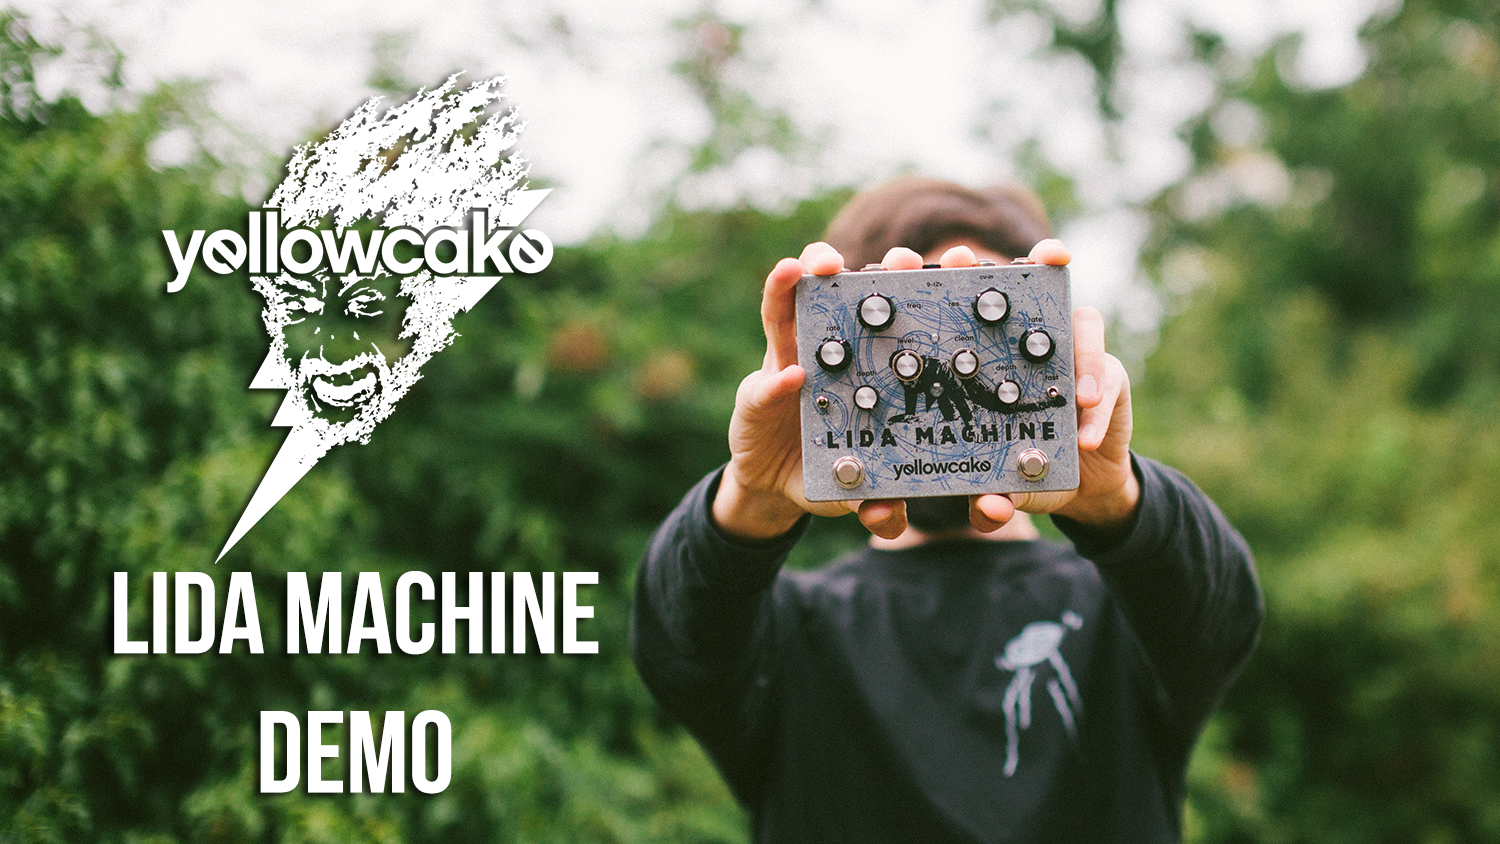 New pedal demo! The Yellowcake Pedals 'Lida Machine'